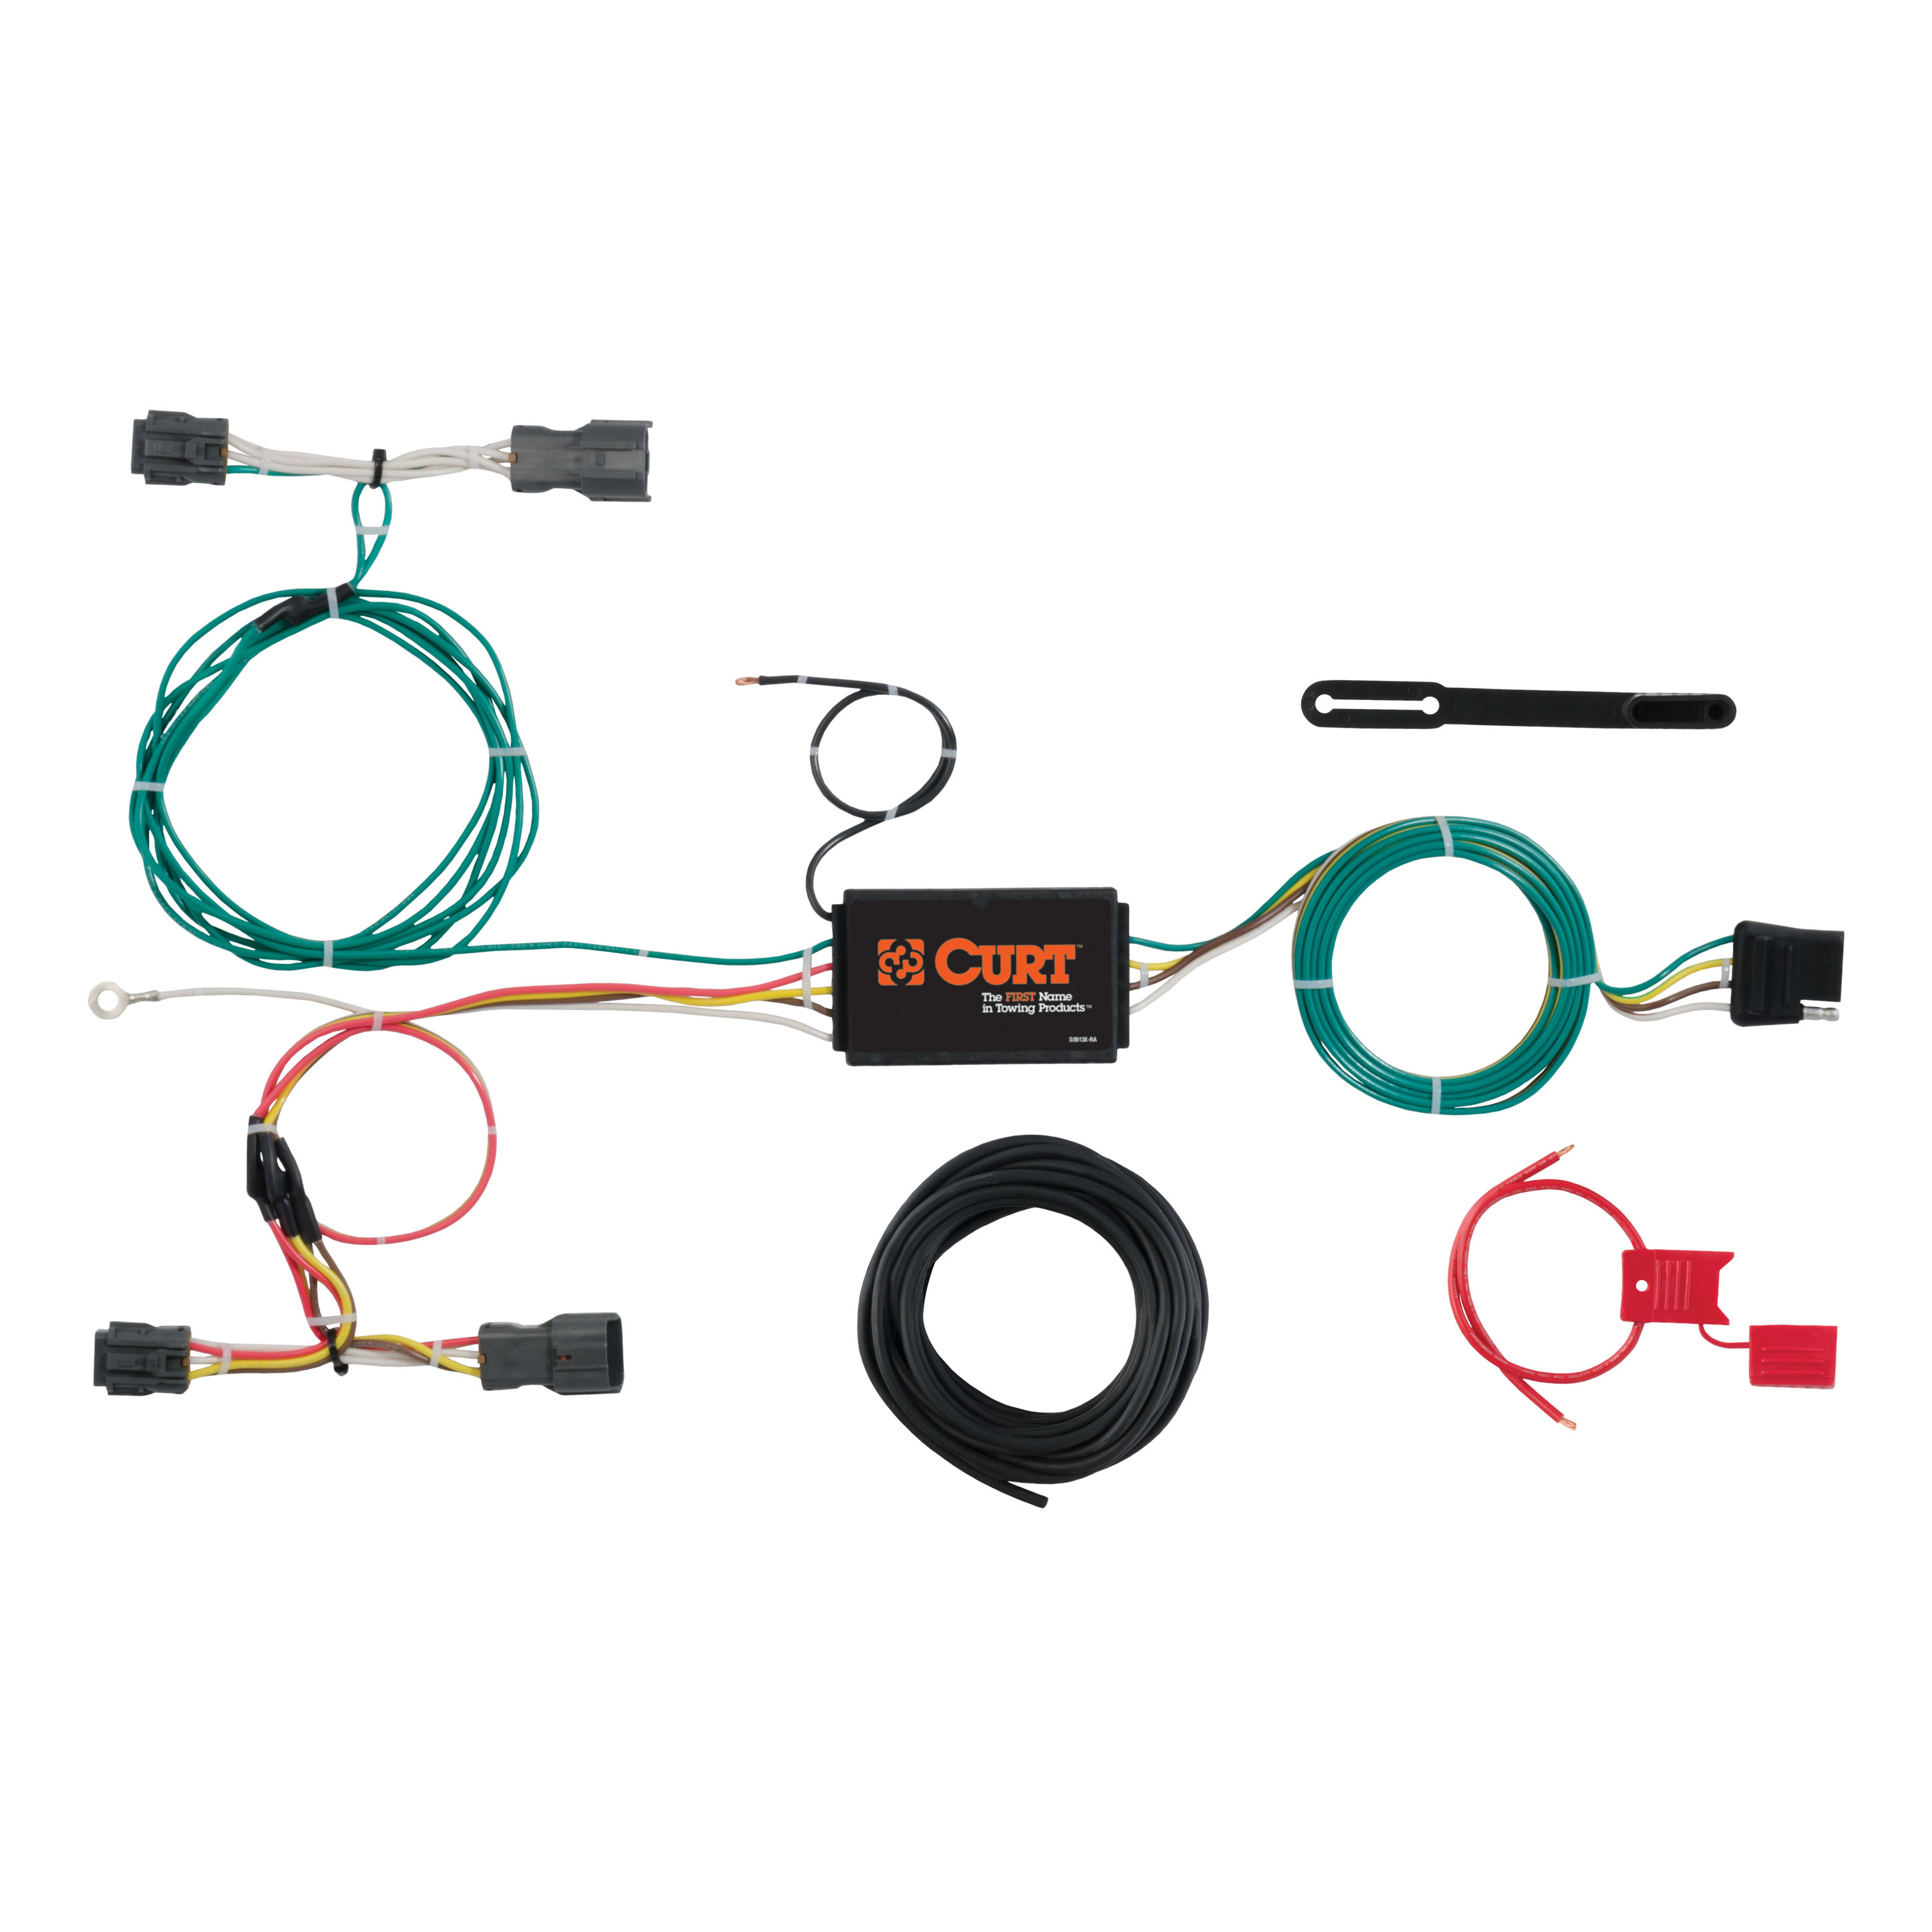 CURT Custom Vehicle-to-Trailer Wiring Harness 56277 For